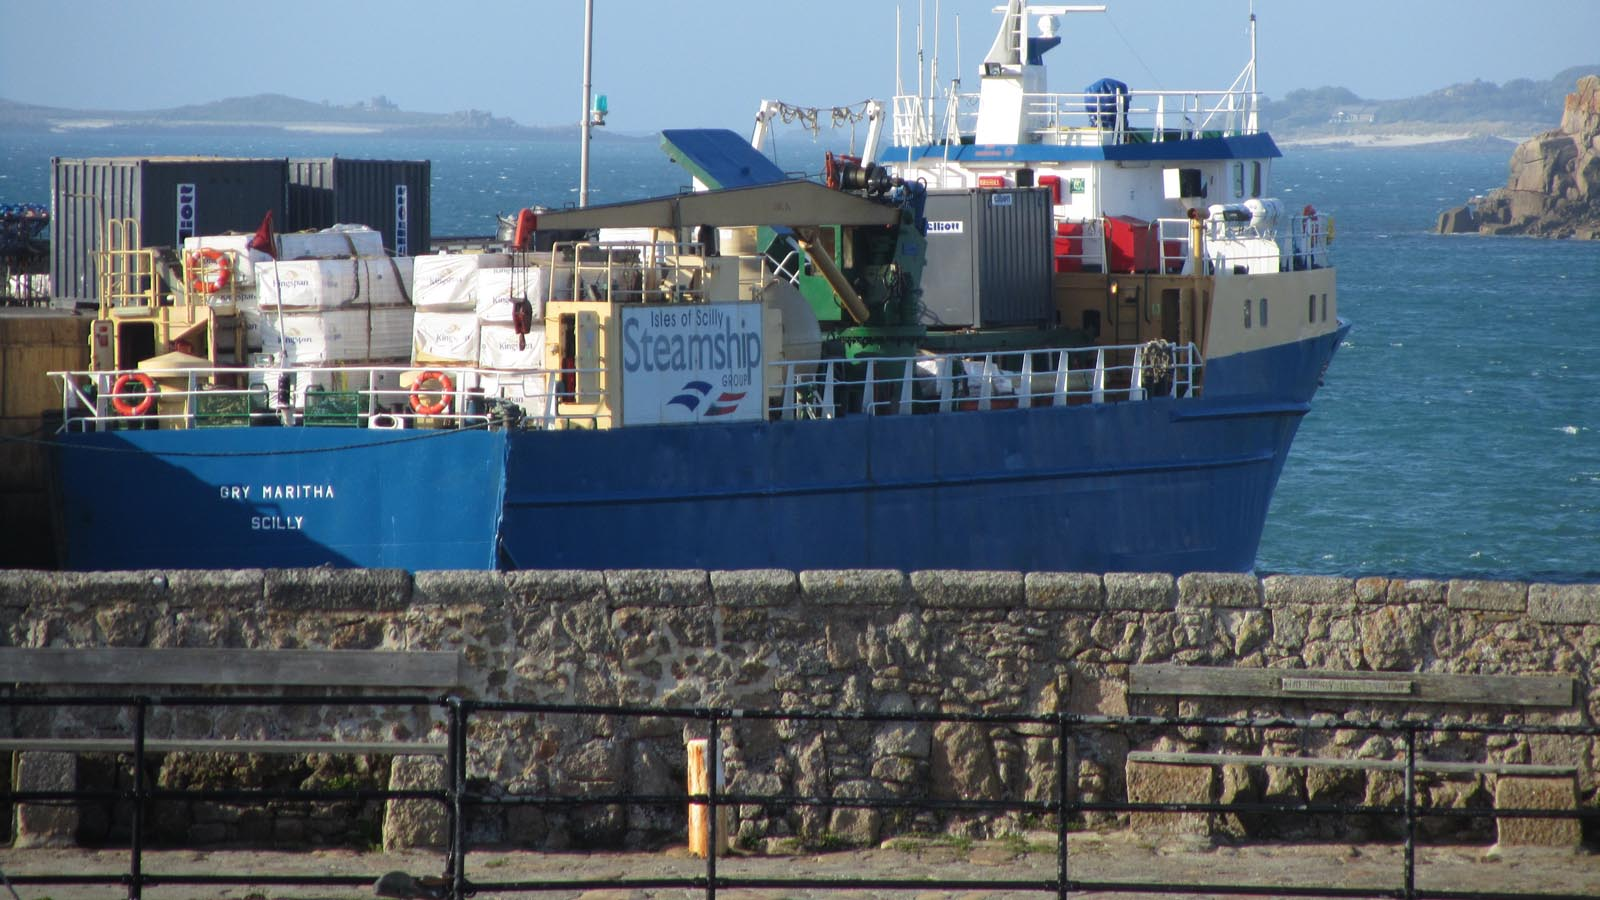 The Gry Maritha alongside the quay on St Mary's..